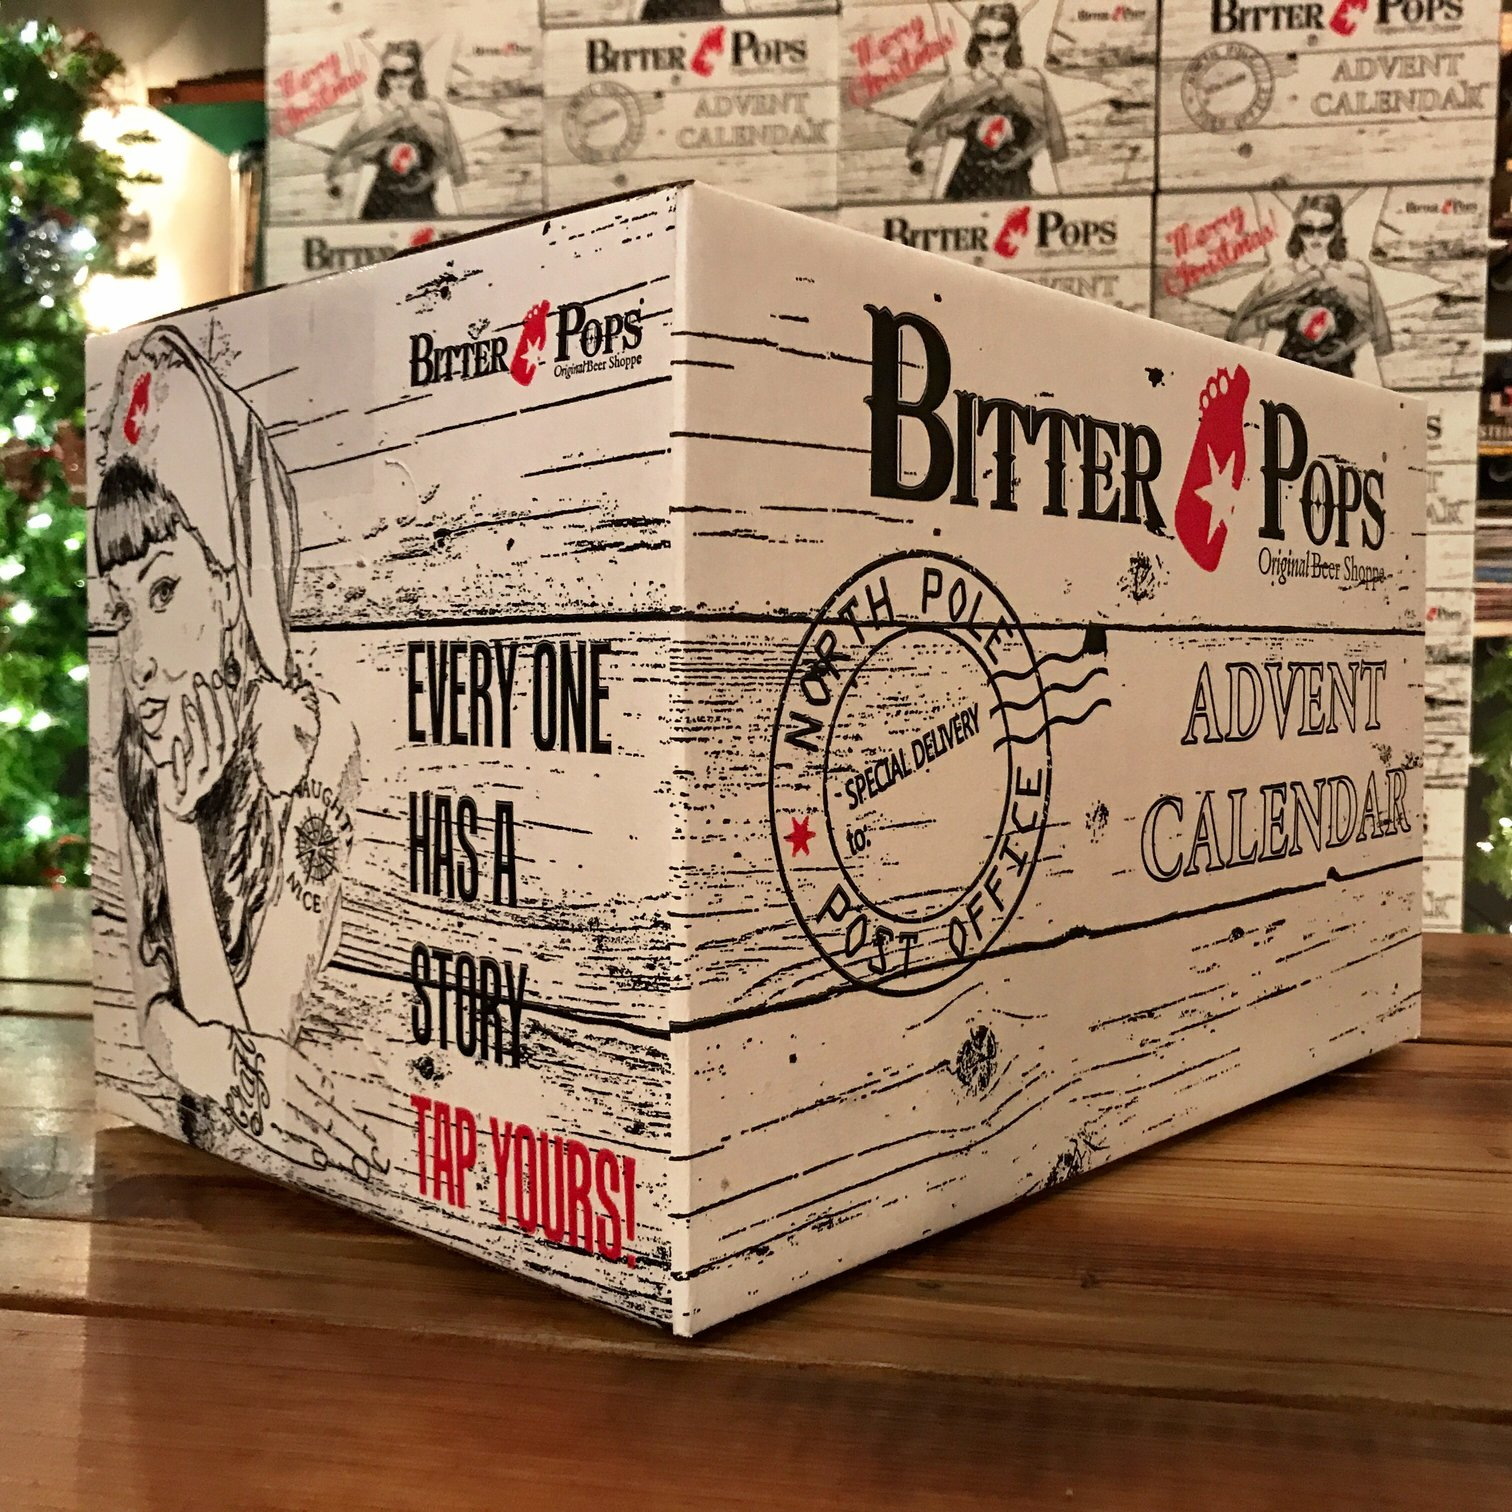 Chicago quick sips october 30 for Craft beer advent calendar 2017